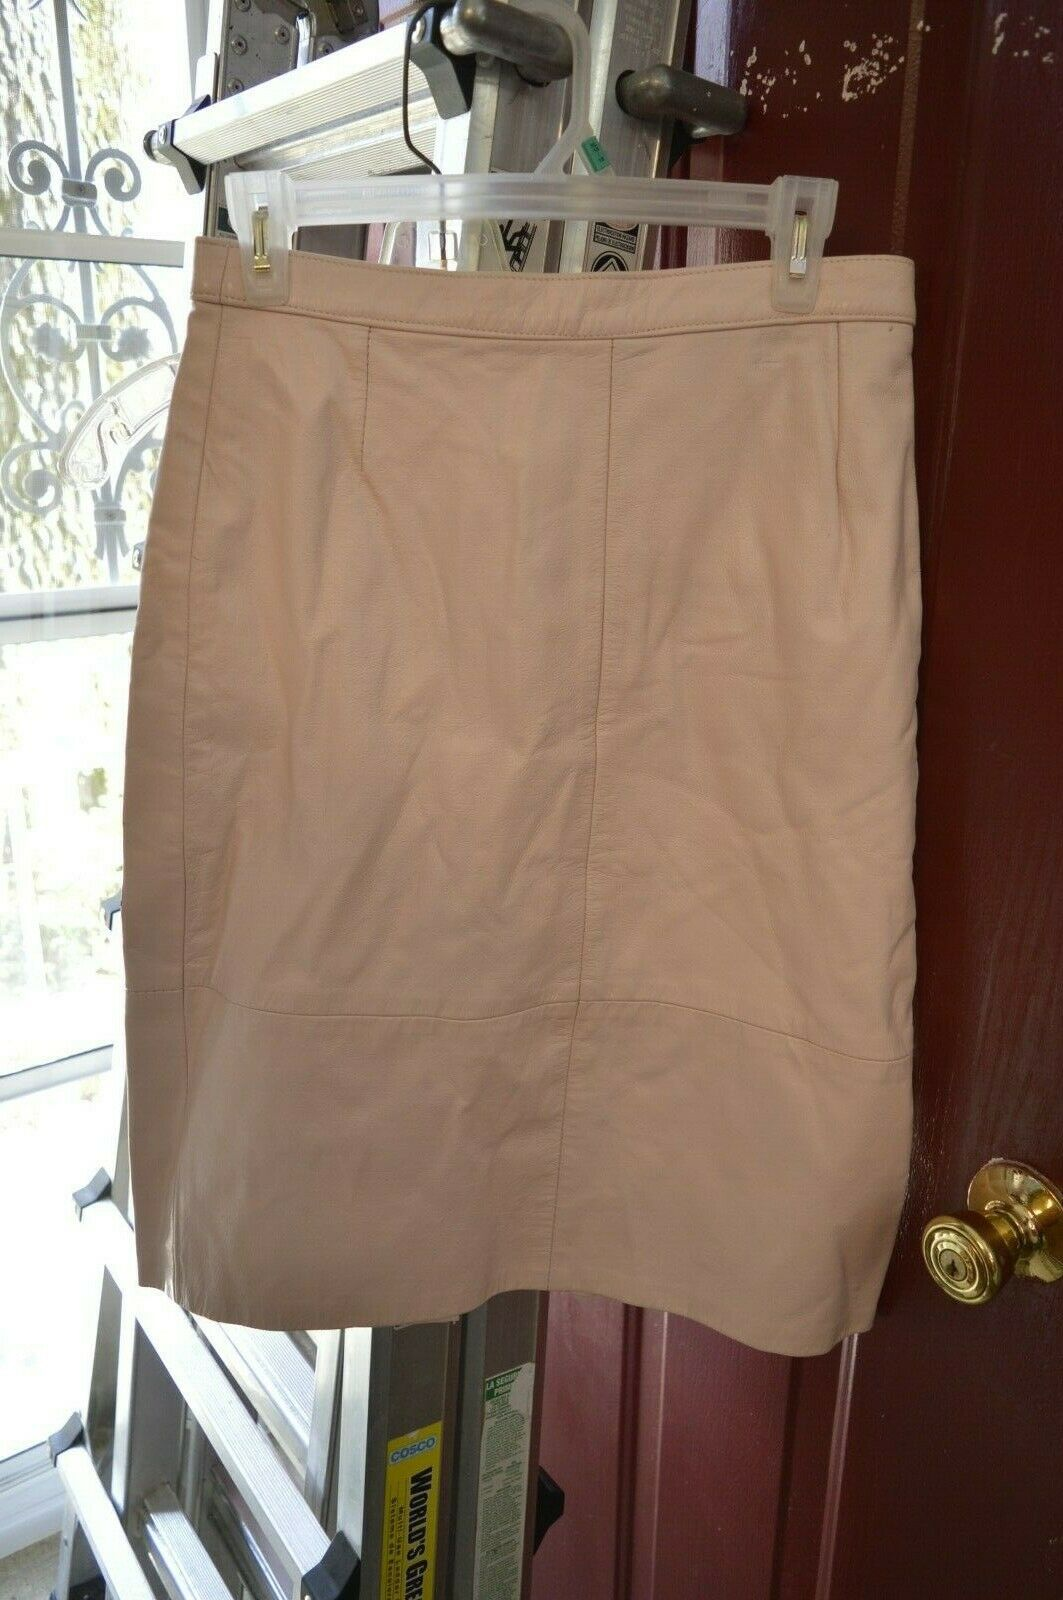 Nwt pink leather skirt  13 14